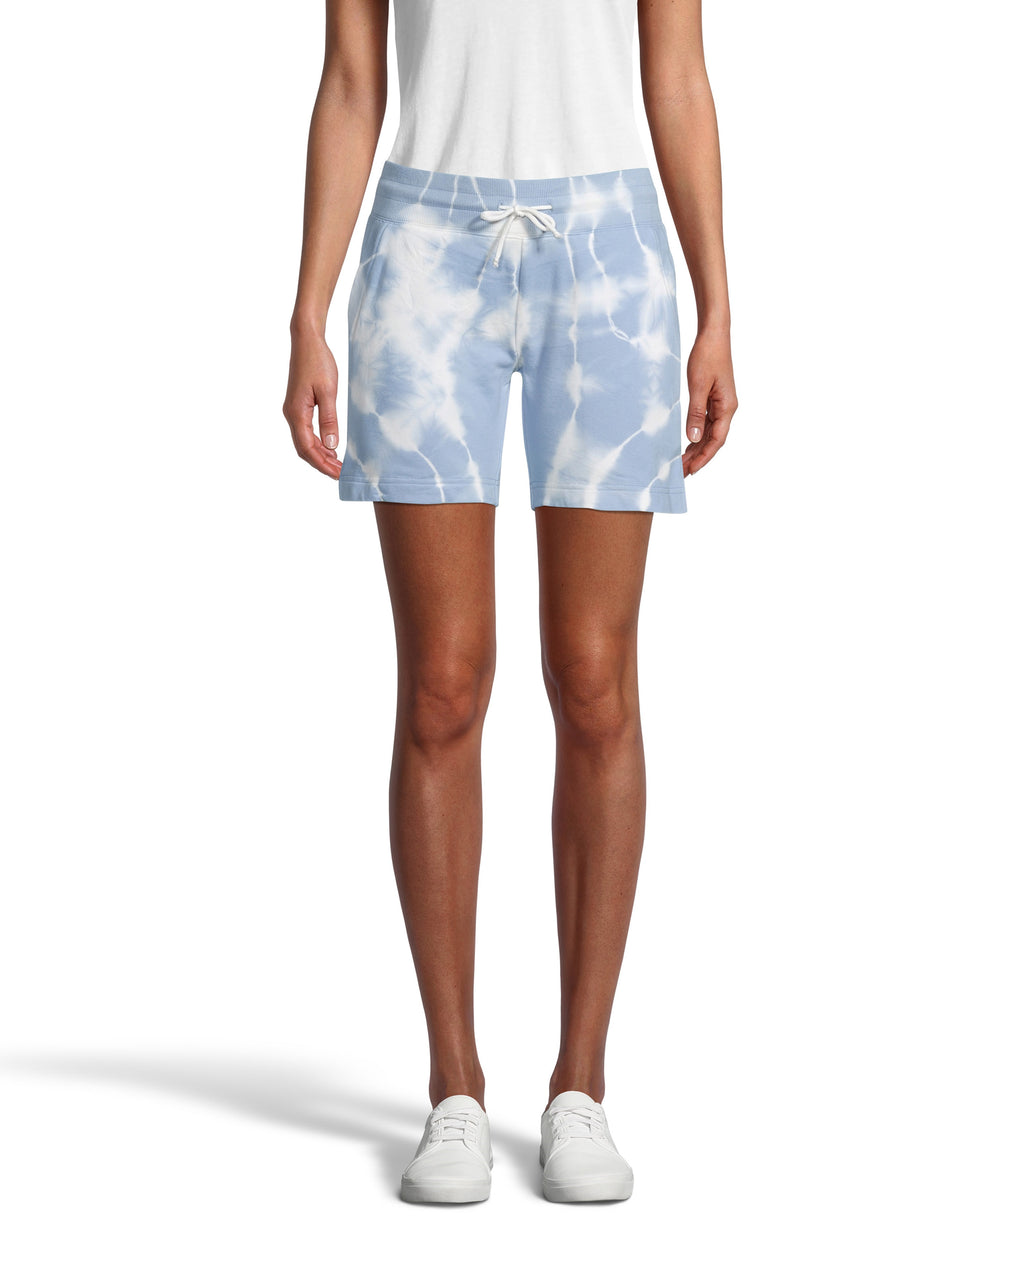 CP18568 - TIE DYE DRAWSTRING SHORTS - bottoms - shorts - For running errands to lounging on the couch and everything in between. Made from incredibly soft 100% cotton and featuring an adjustable drawstring waist. Add 1 line break Stylist Tip: Style with sneakers and a white tee for a cute but comfortable on-the-go look.